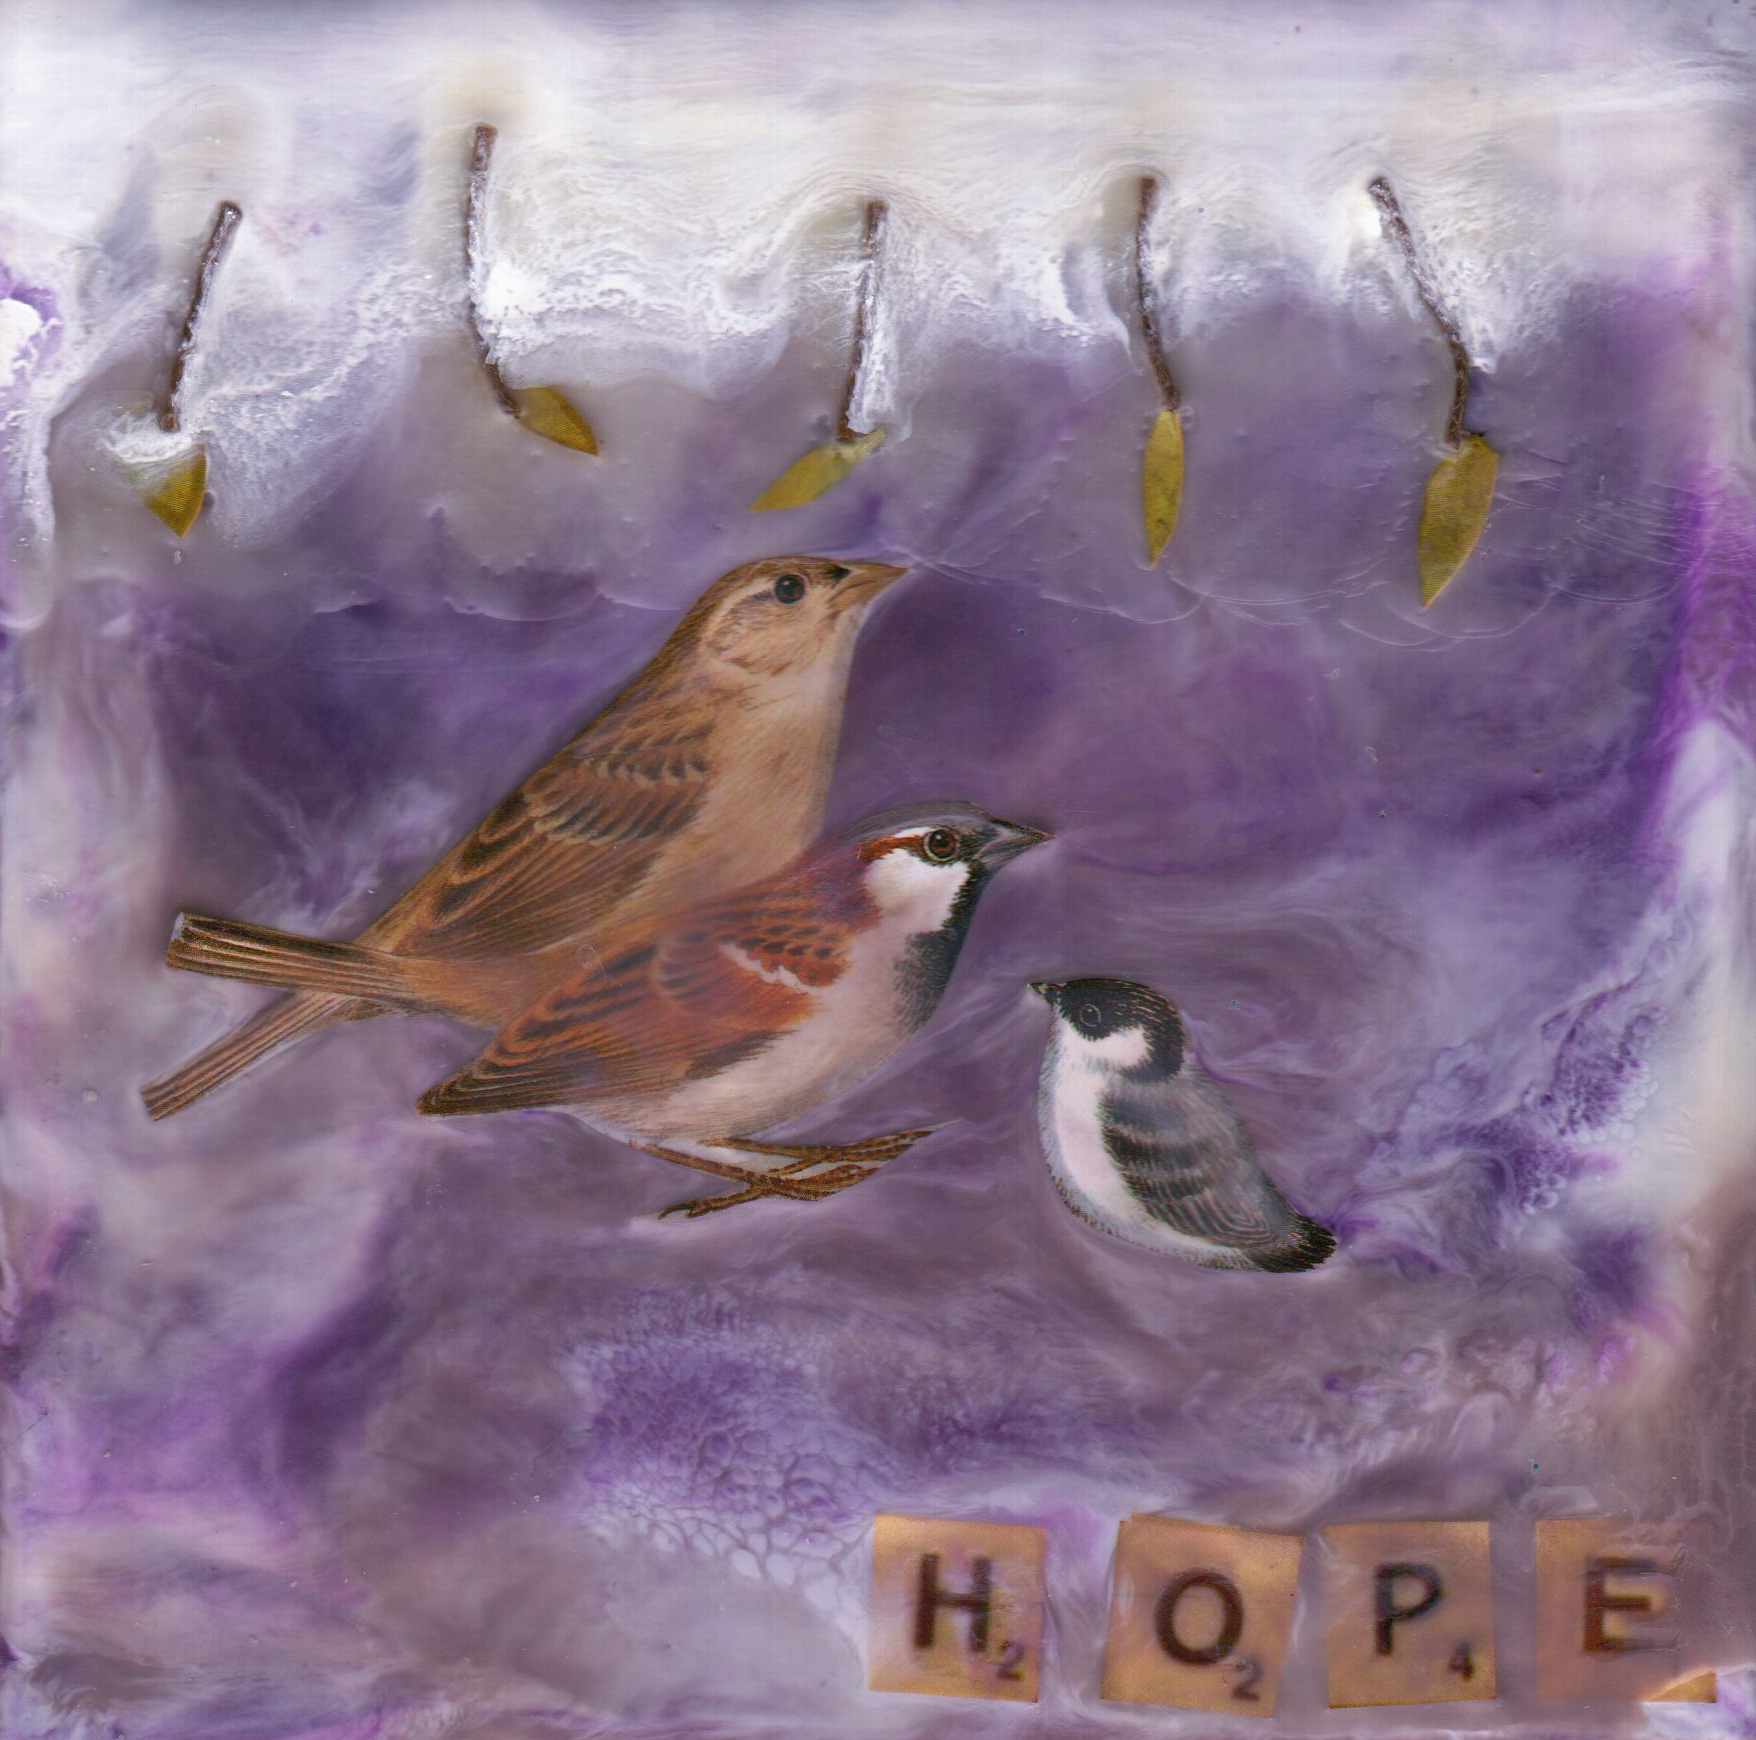 Family of Hope, mixed media encaustic by Courtney Putnam